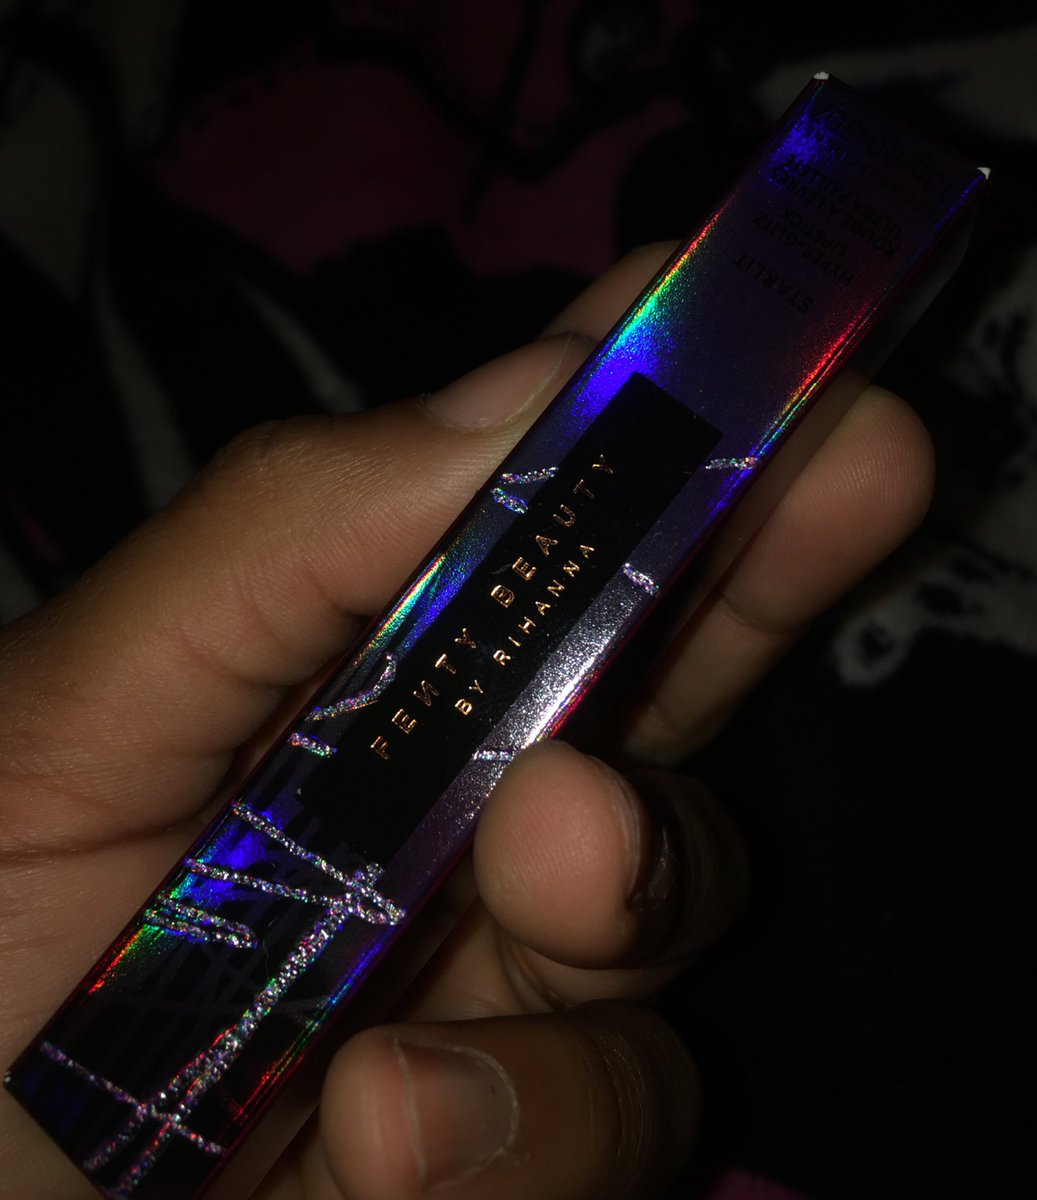 fenty beauty Hyper-Glitz Lipstick.. #Glamorous #GALAXYCOLLECTION<br>http://pic.twitter.com/jY7H4dLeT9